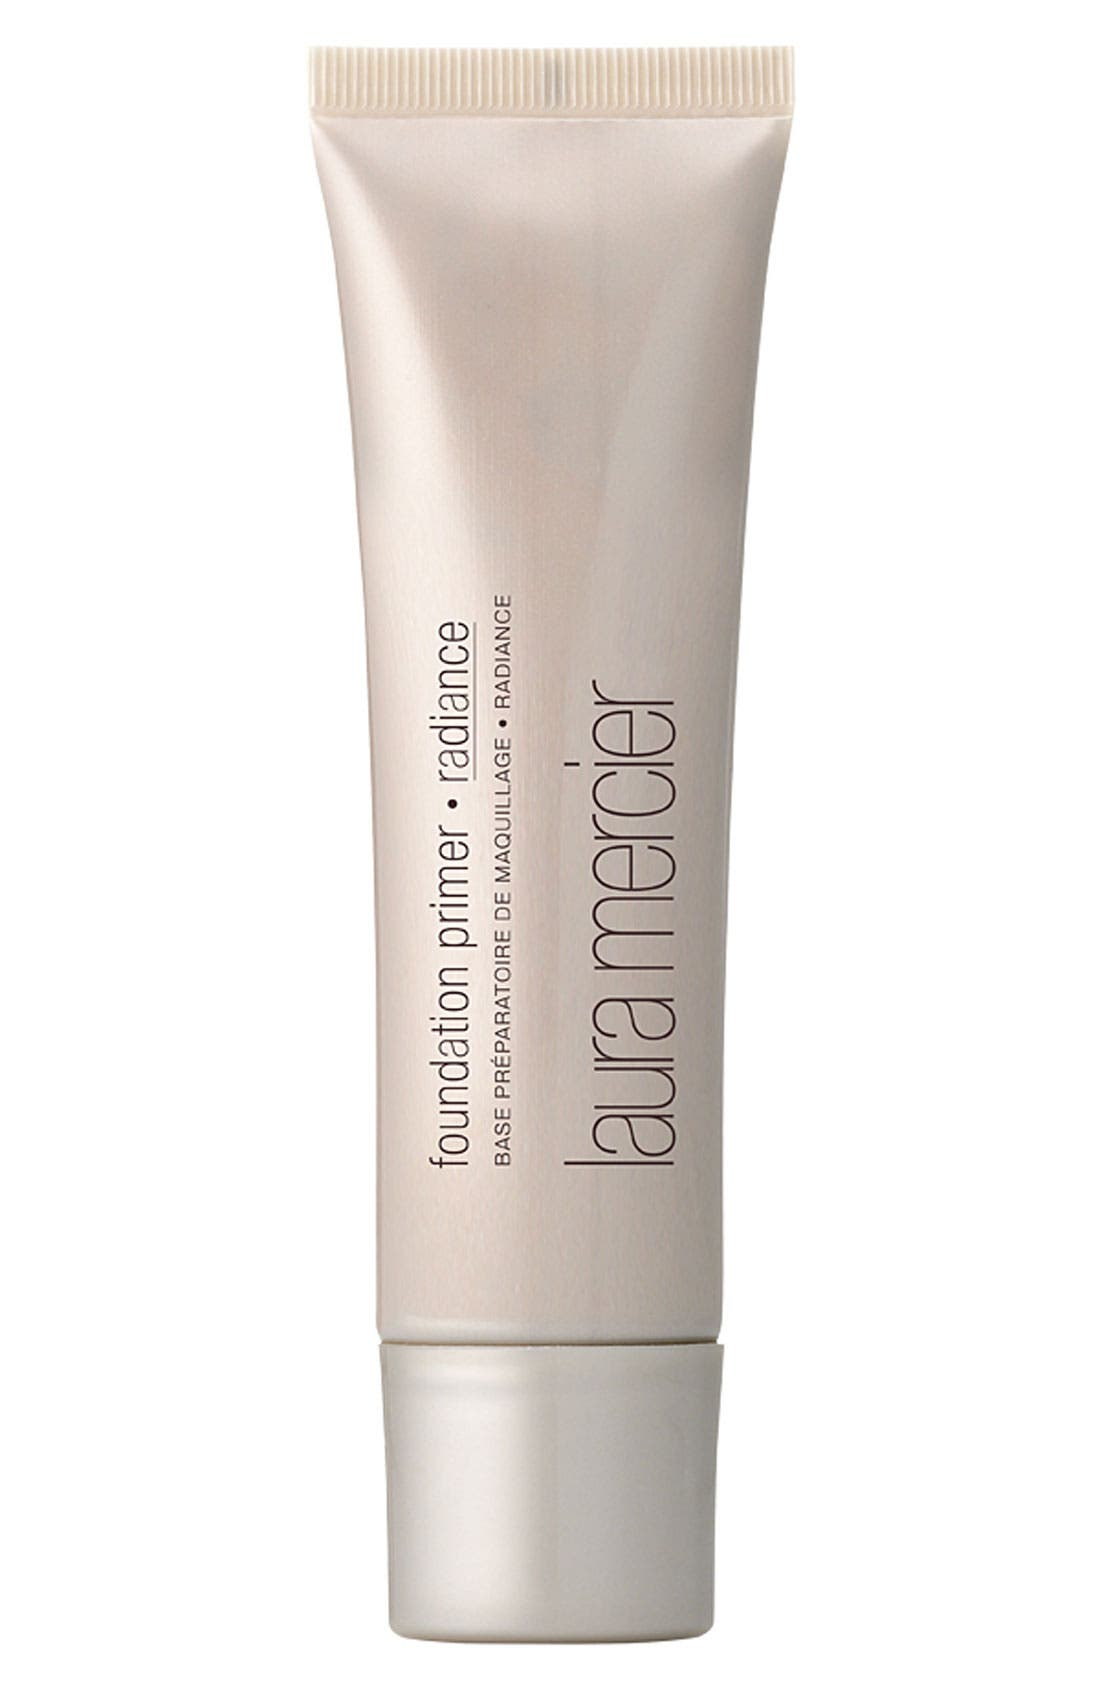 Radiance Foundation Primer,                             Main thumbnail 1, color,                             NO COLOR